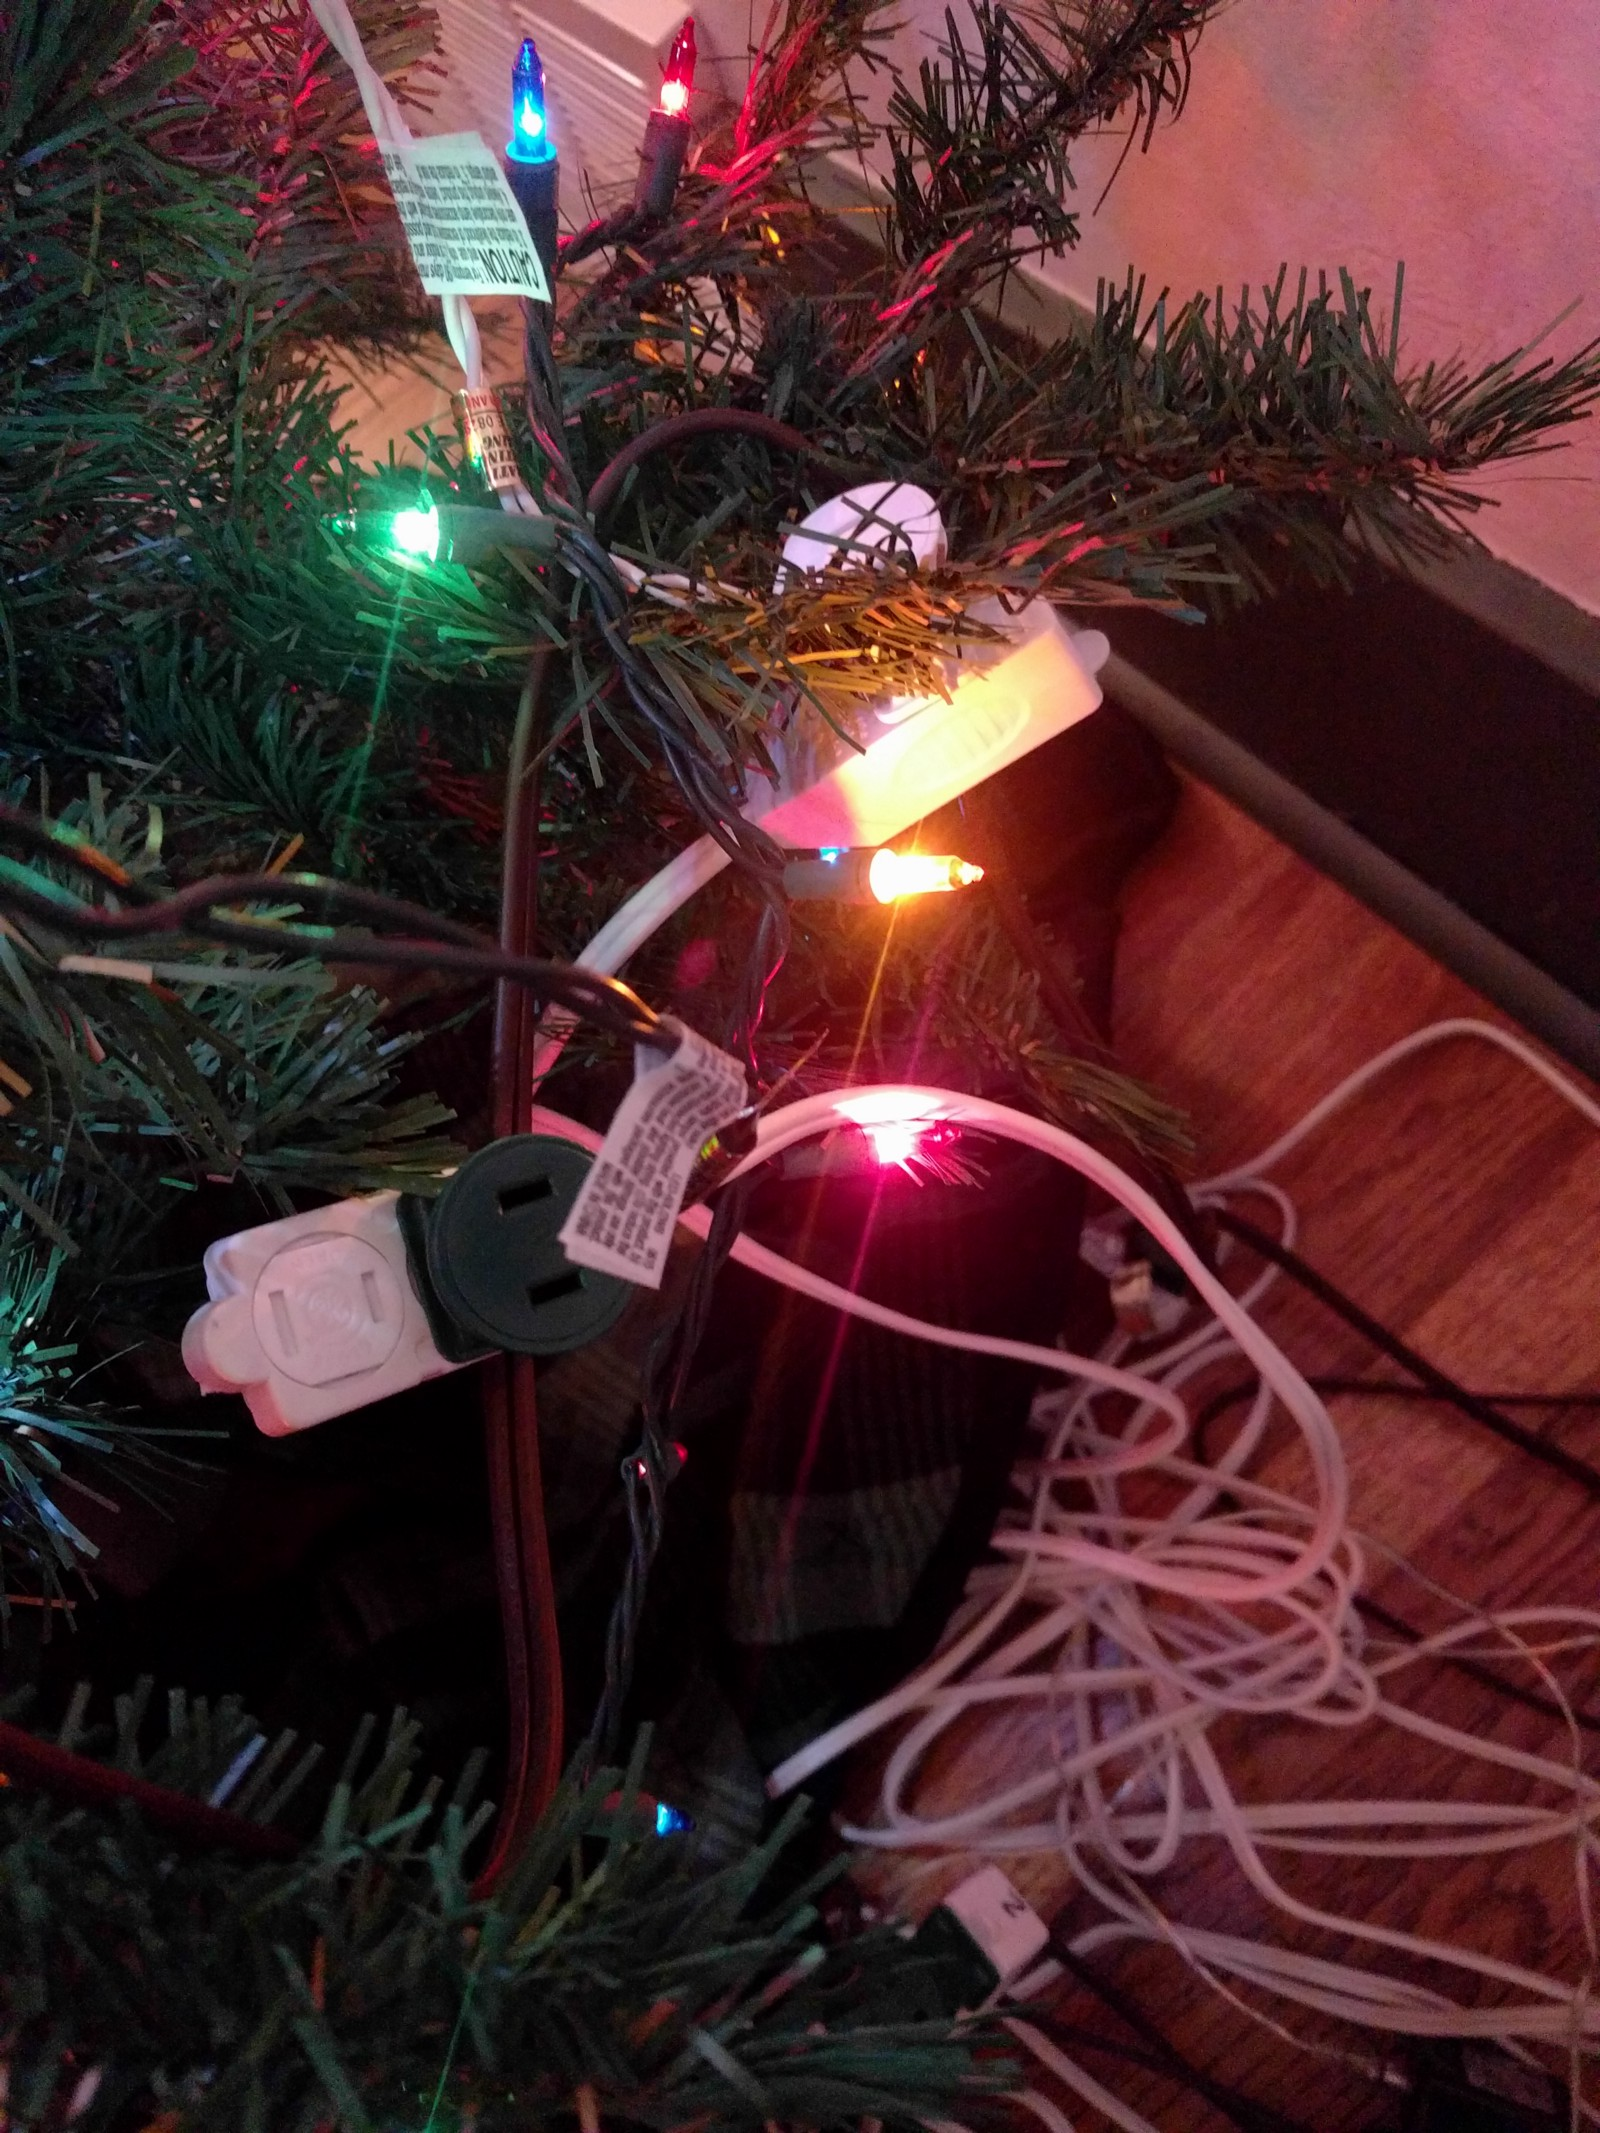 Raspberry Pi Christmas Tree Light Show Controlling Gpio Pins Over String Wiring Diagram On Lights Round Back Of The